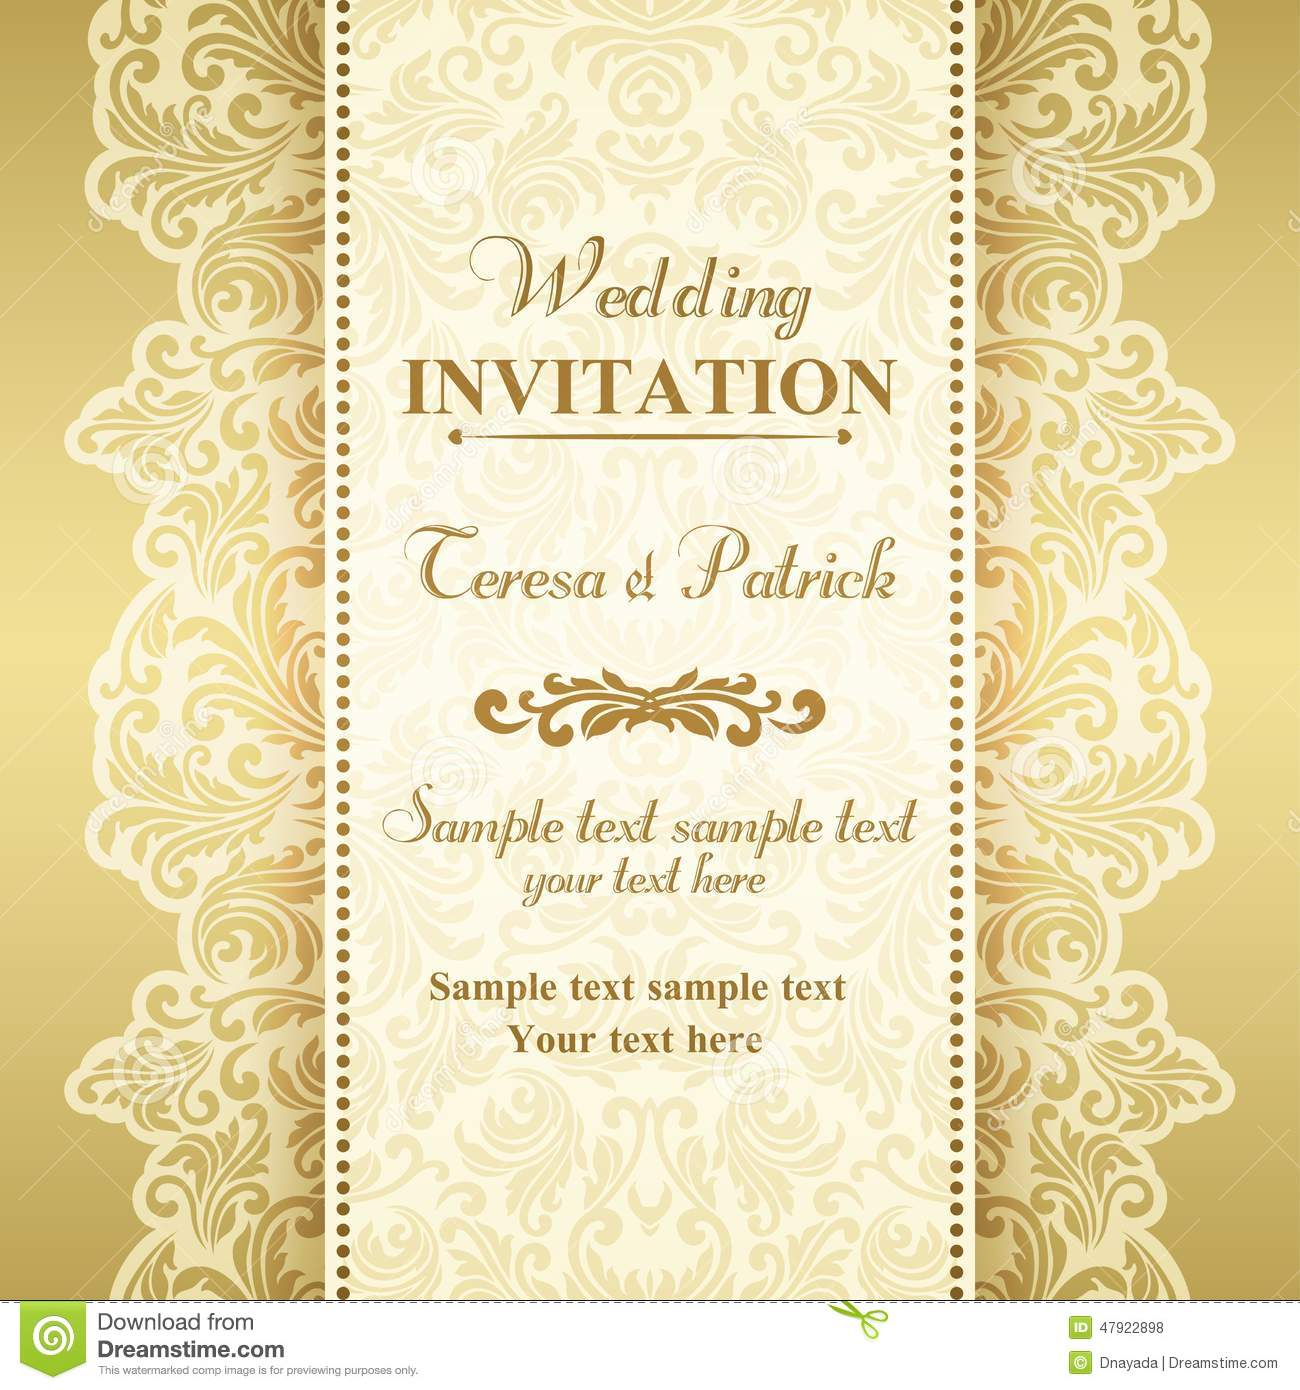 Fancy Invitation Templates as perfect invitations design